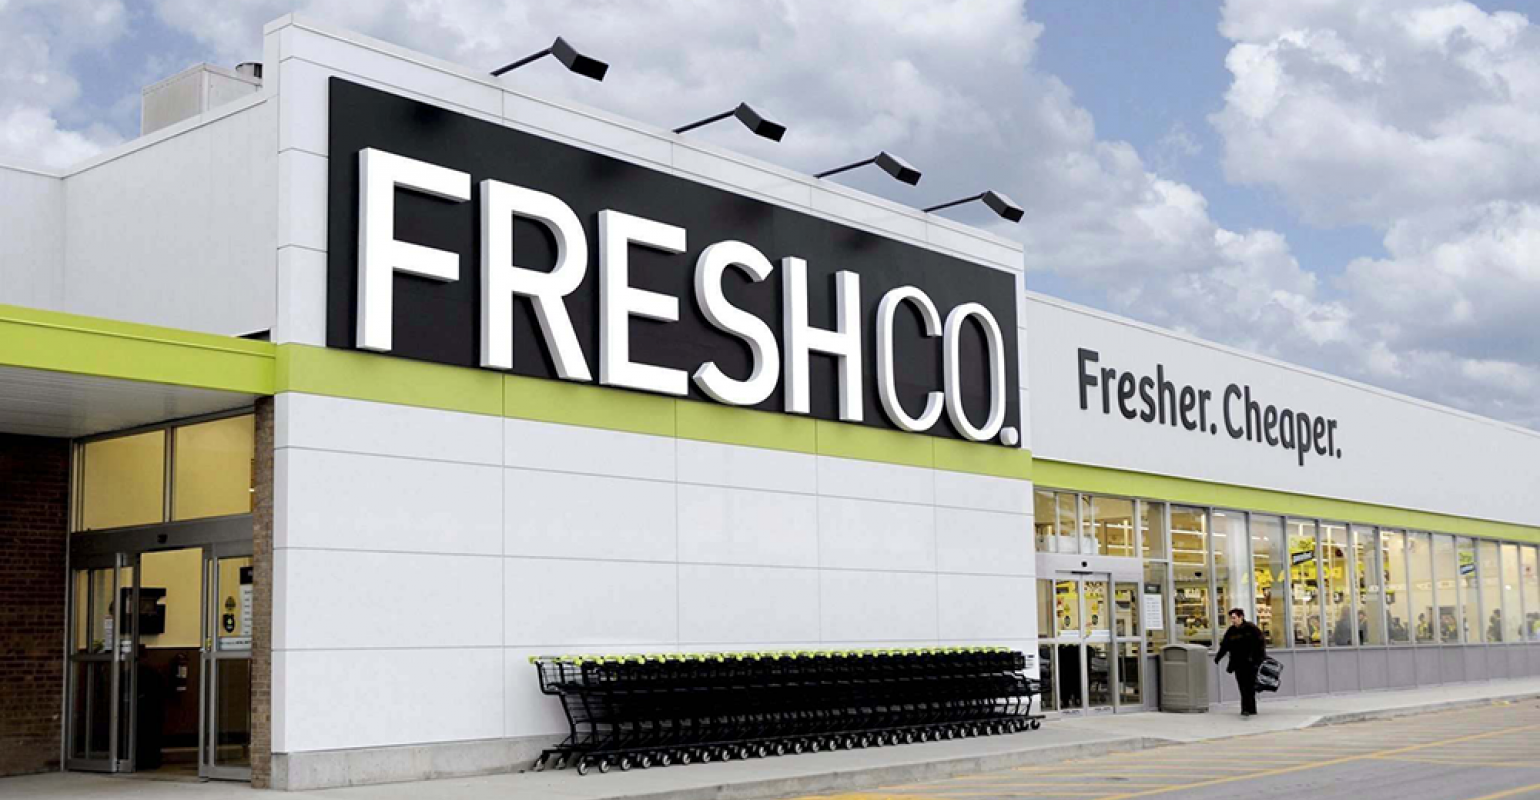 Conversion of Safeway, Sobeys stores to FreshCo on track